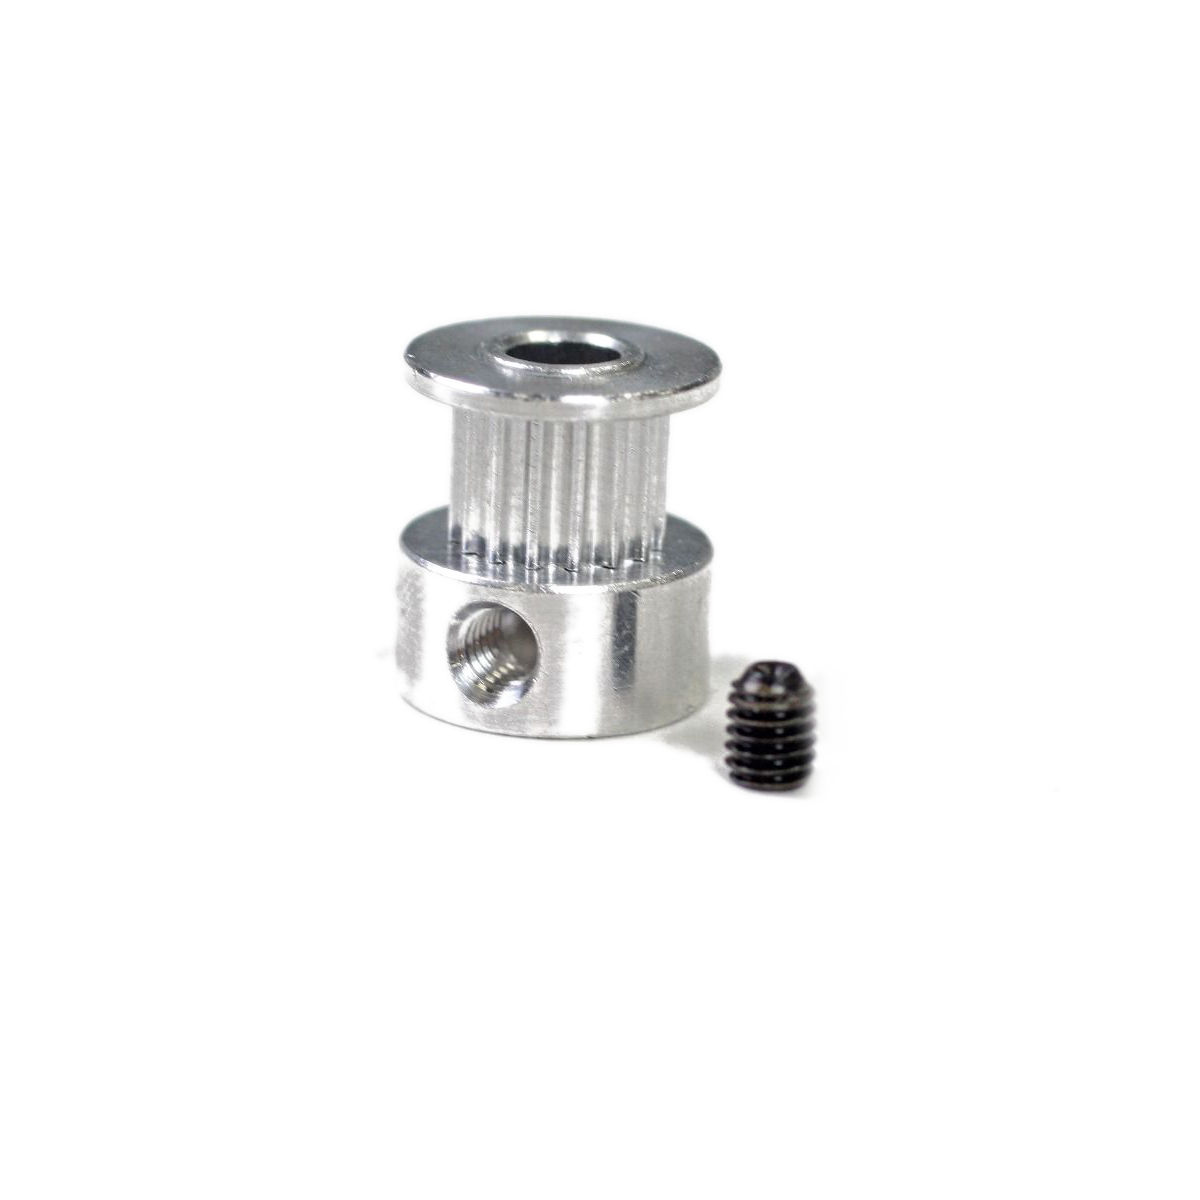 Gates 2MR-16S-06 GT2 Pulley - 3D Printing Canada